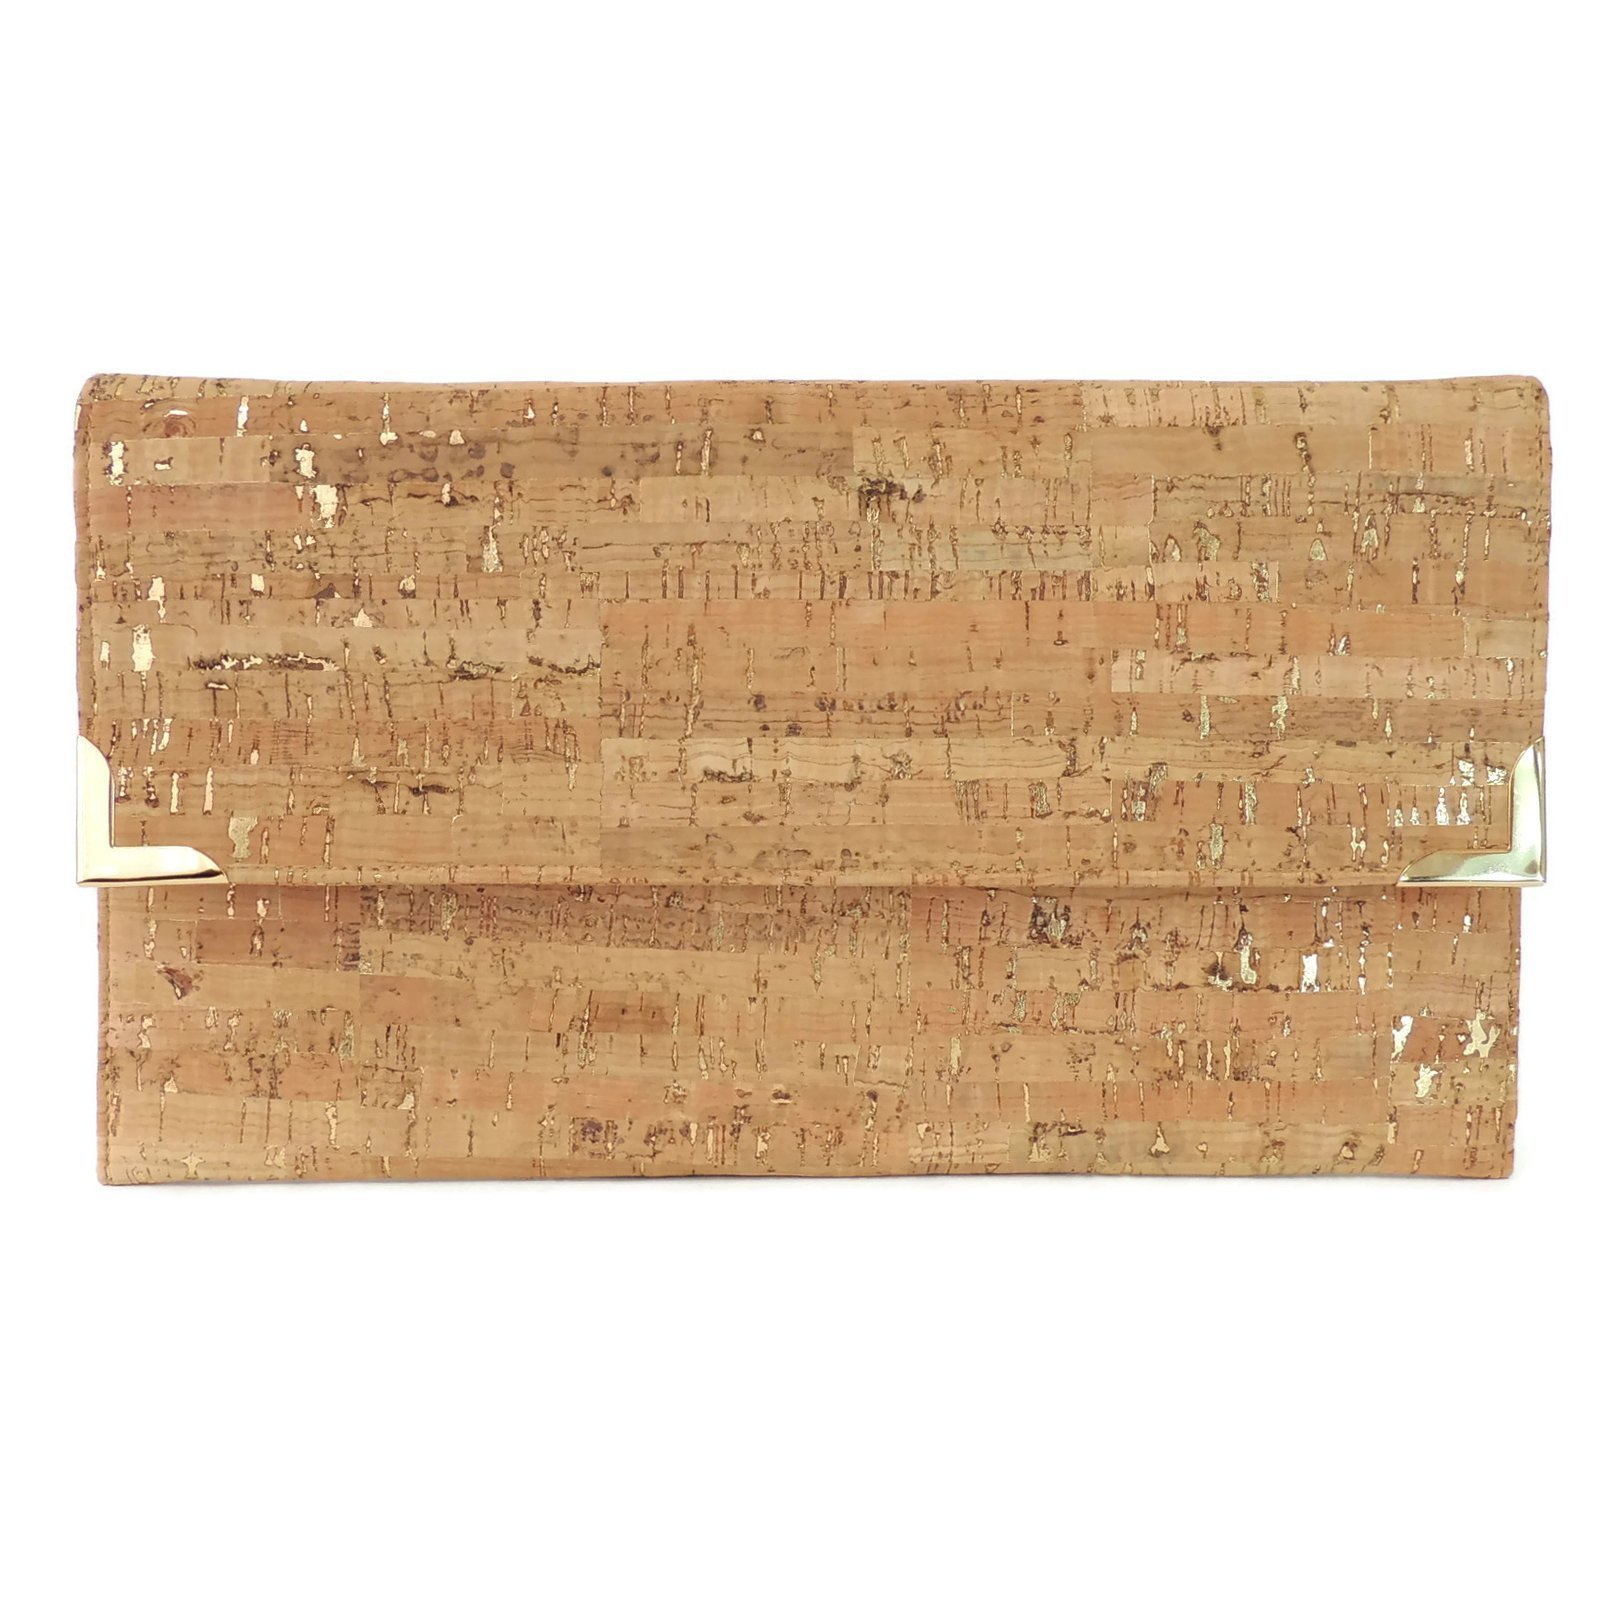 Cork Dash Gold Folio Foldover Clutch Bag by Spicer Bags